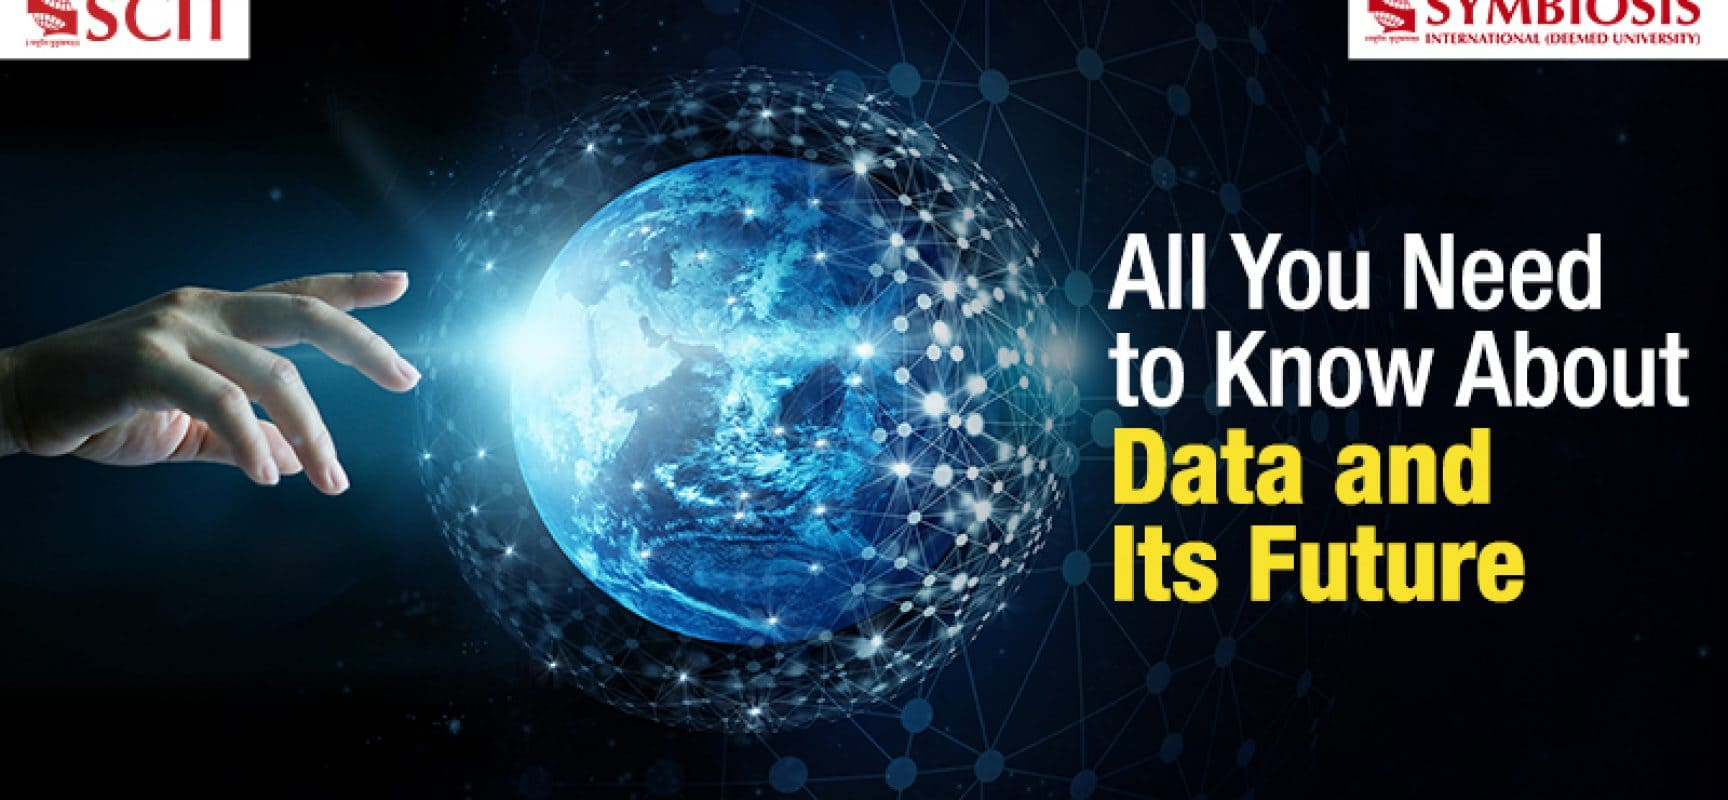 All You Need to Know About Data and Its Future